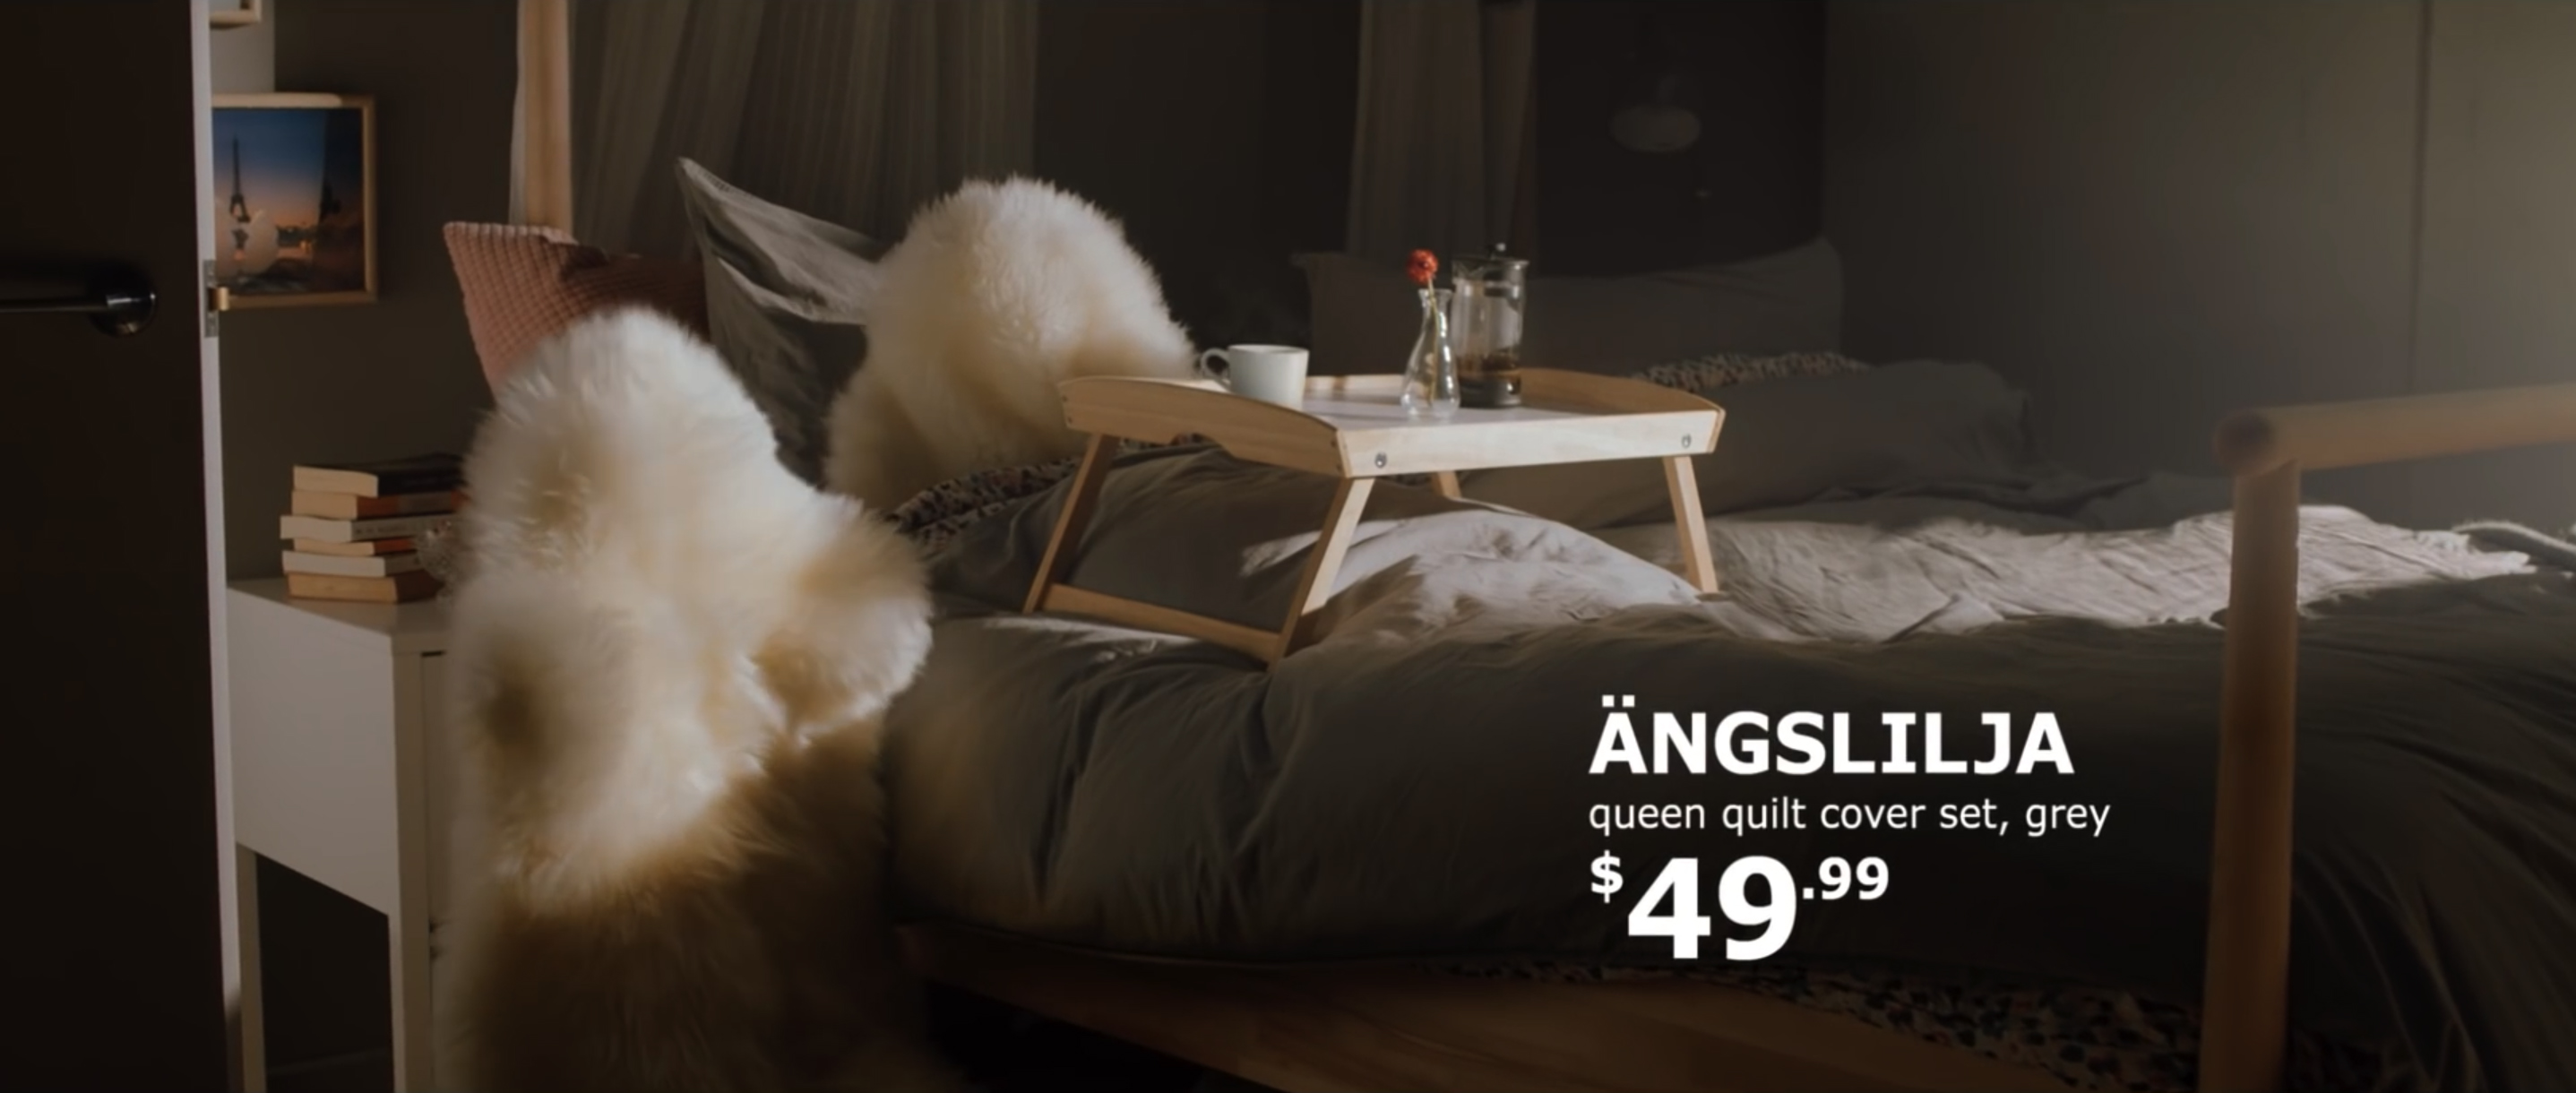 Ikea best day is everyday the inspiration room for Ikea commercial 2017